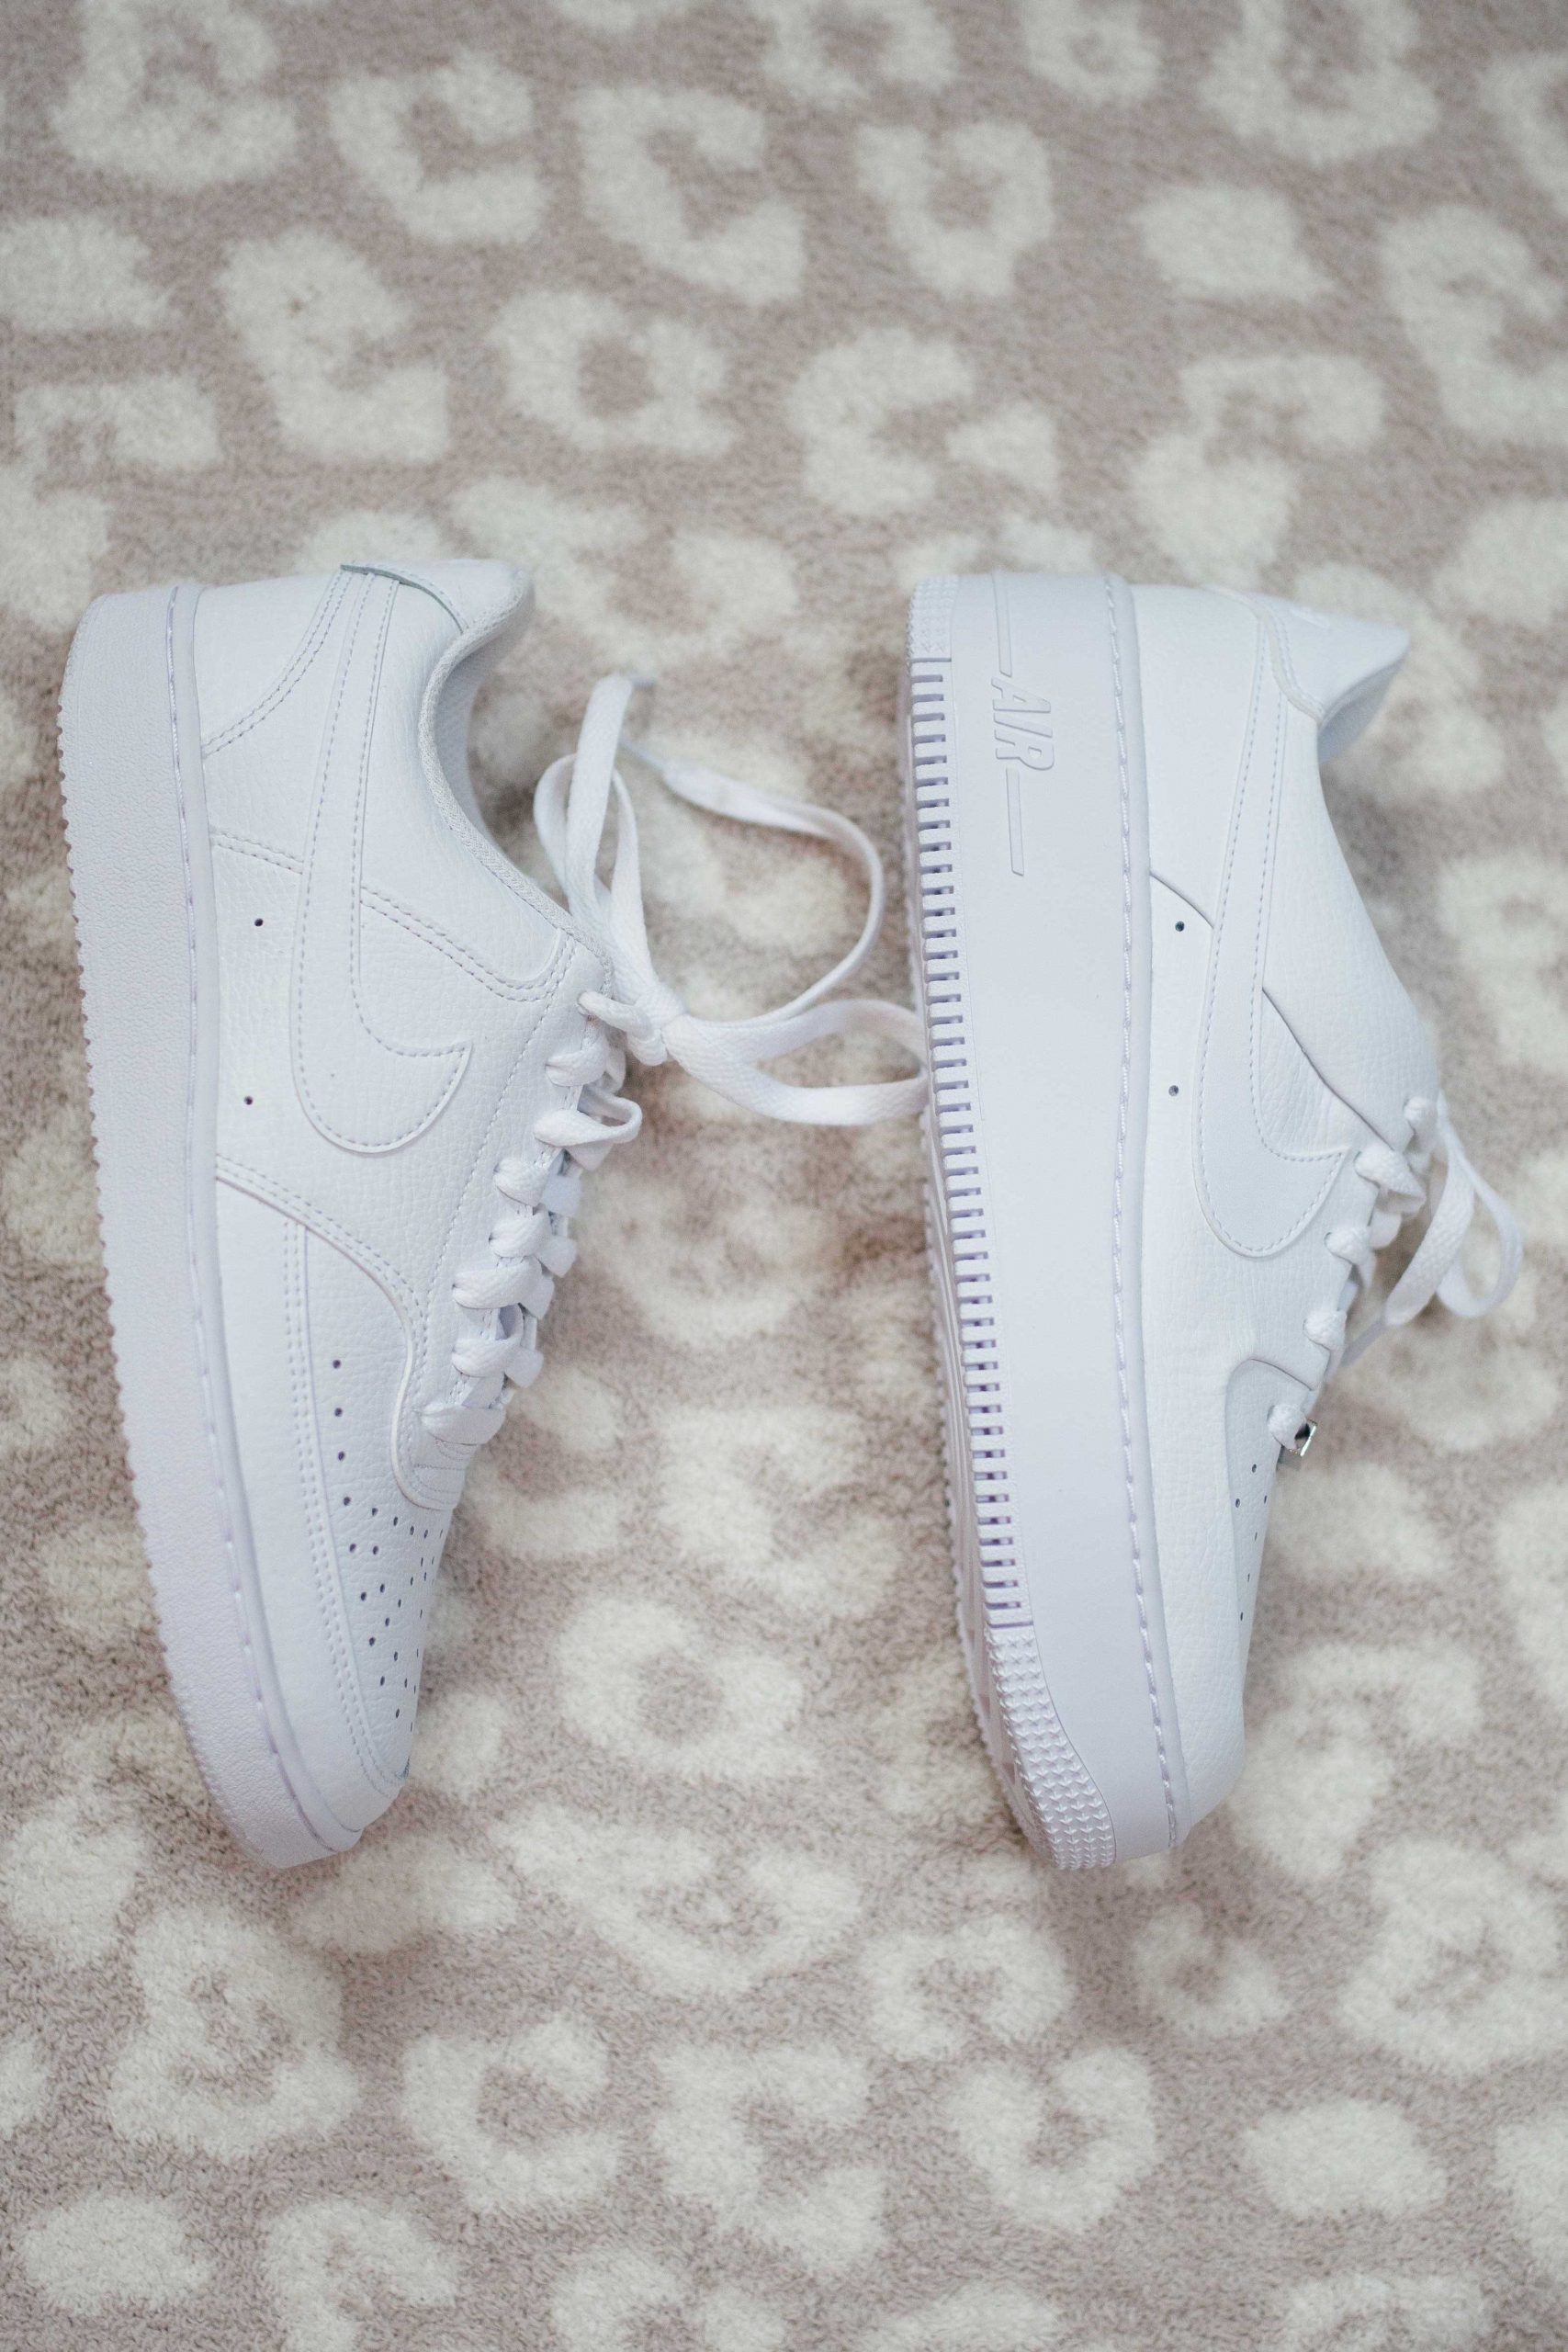 Virginia blogger, Lauren Dix, tries on 10 different pairs of white sneakers for the ultimate white sneaker review! Lauren compares the Nike Court Vision vs the Nike Air Force 1!